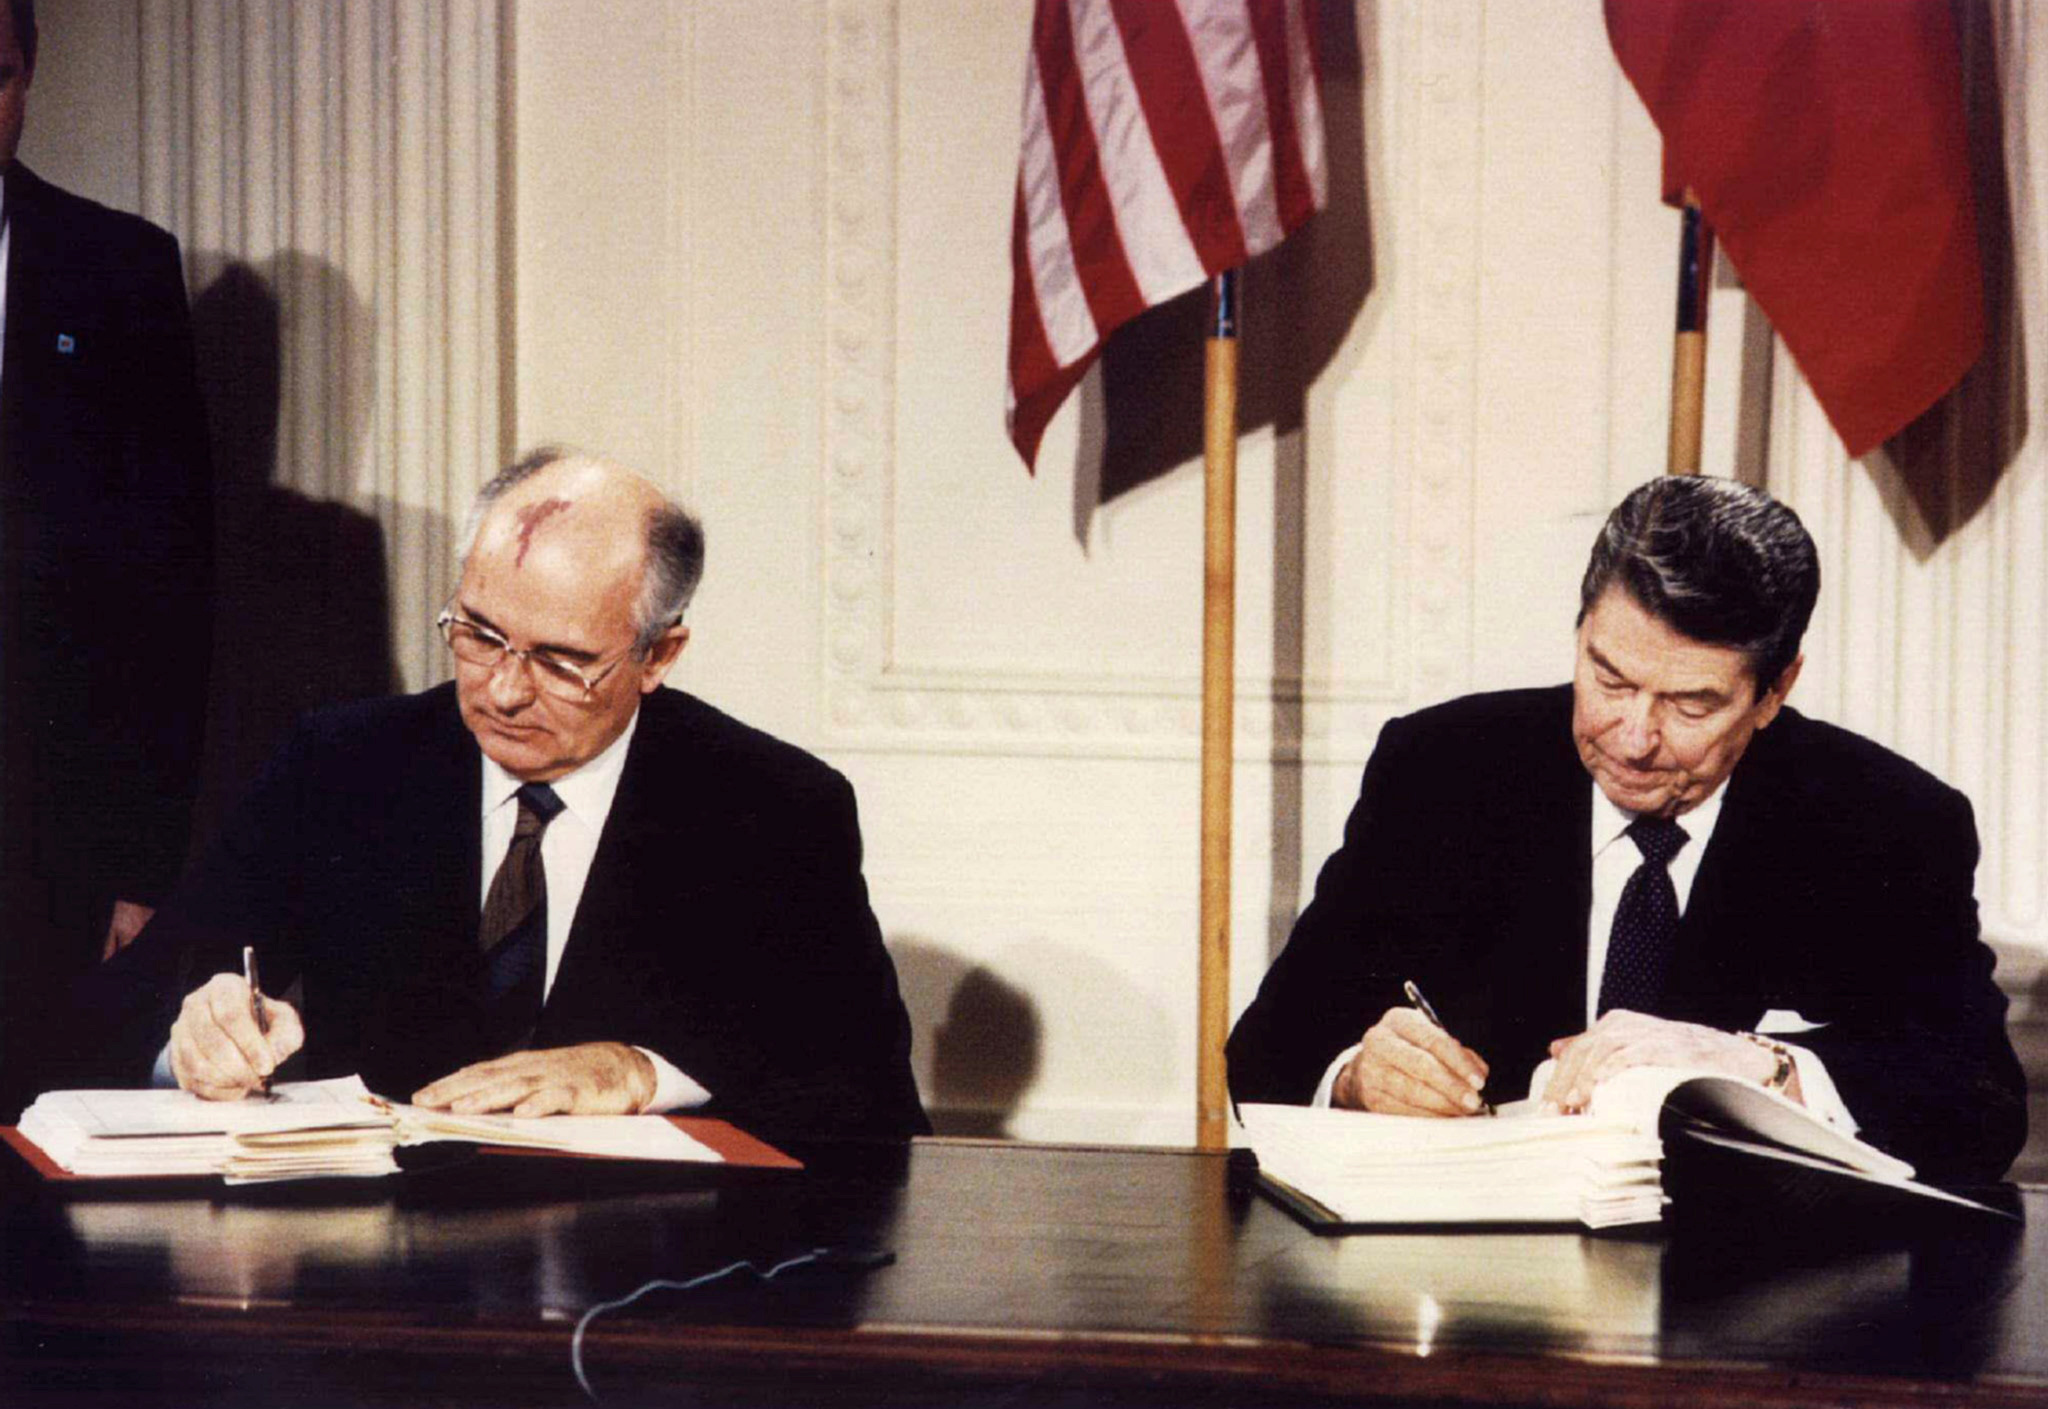 FILE PHOTO: U.S. President Ronald Reagan (R) and Soviet President Mikhail Gorbachev sign the Intermediate-Range Nuclear Forces (INF) treaty at the White House, Washington, on December 8 1987. REUTERS/Stringer